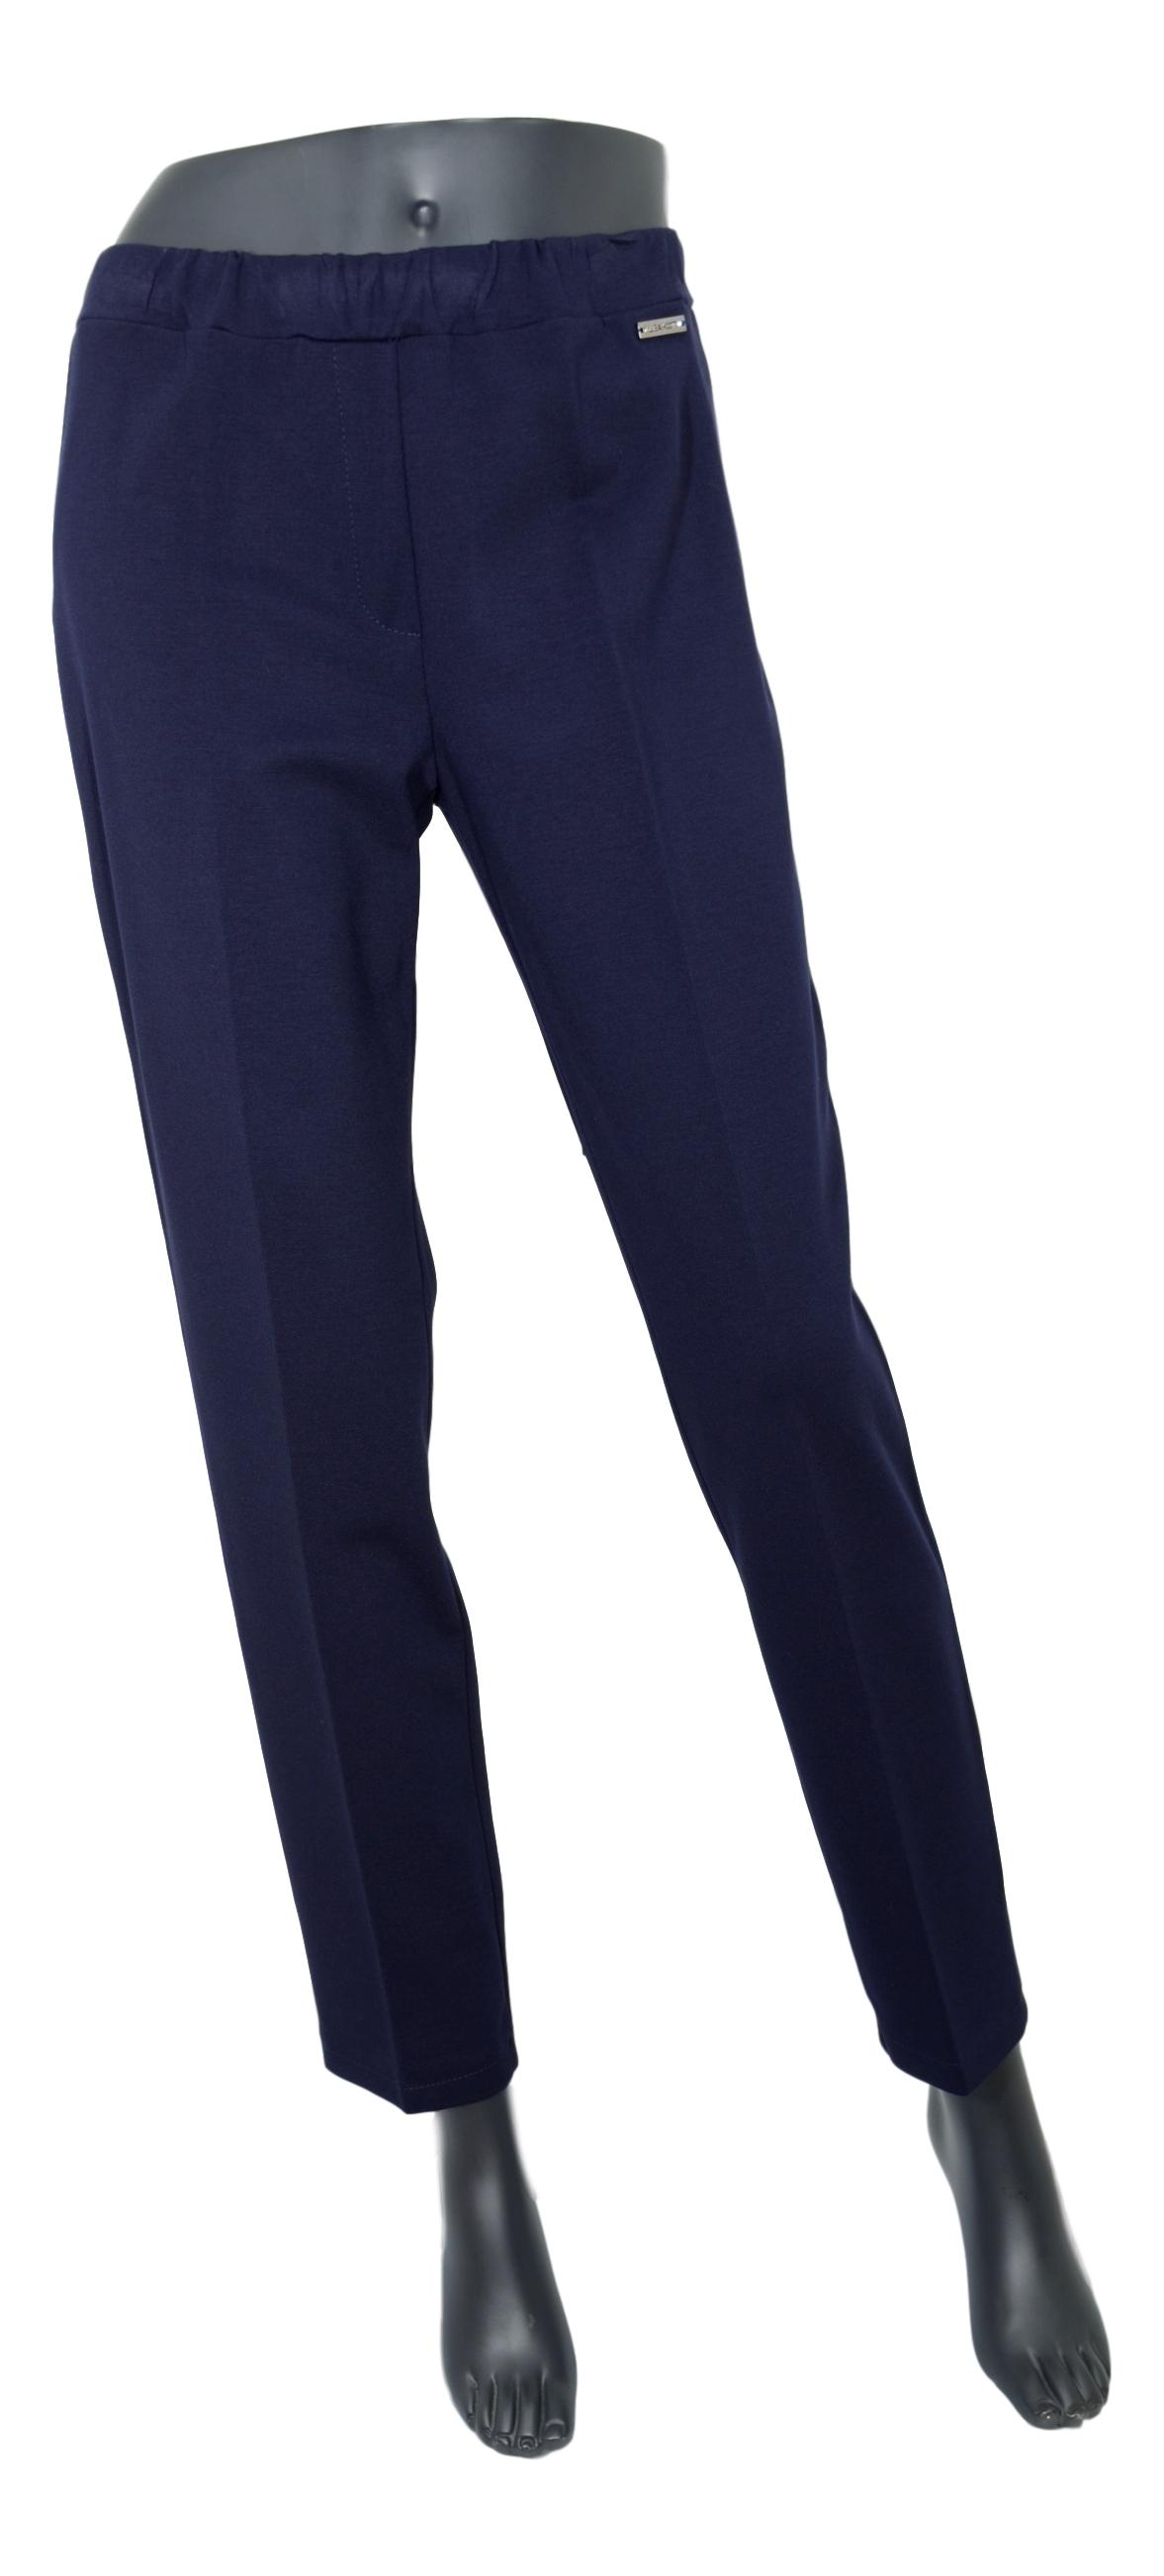 LISA KOTT PANTALONE DONNA CURVY STYLE 4175 COLORE BLU MADE IN ITALY